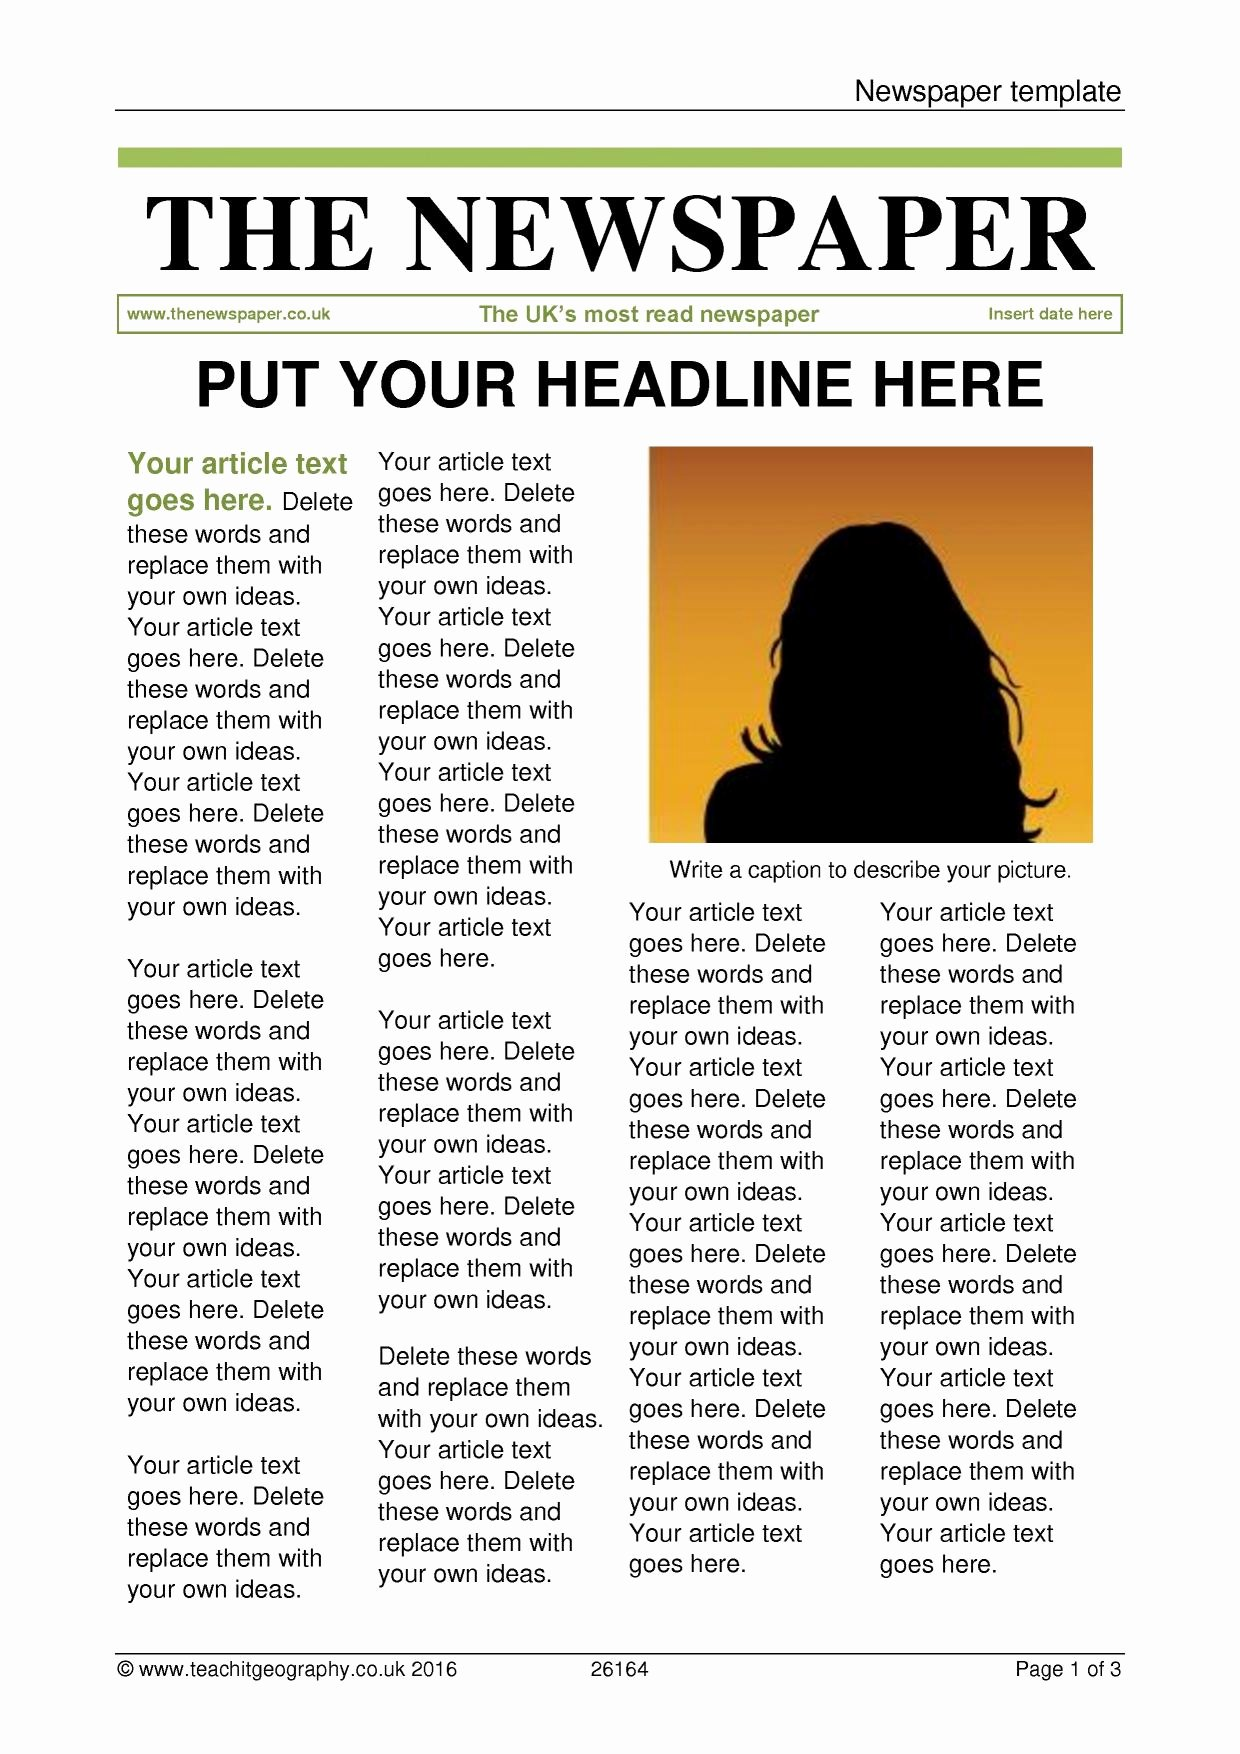 Free Newspaper Article Template Elegant Newspaper Template